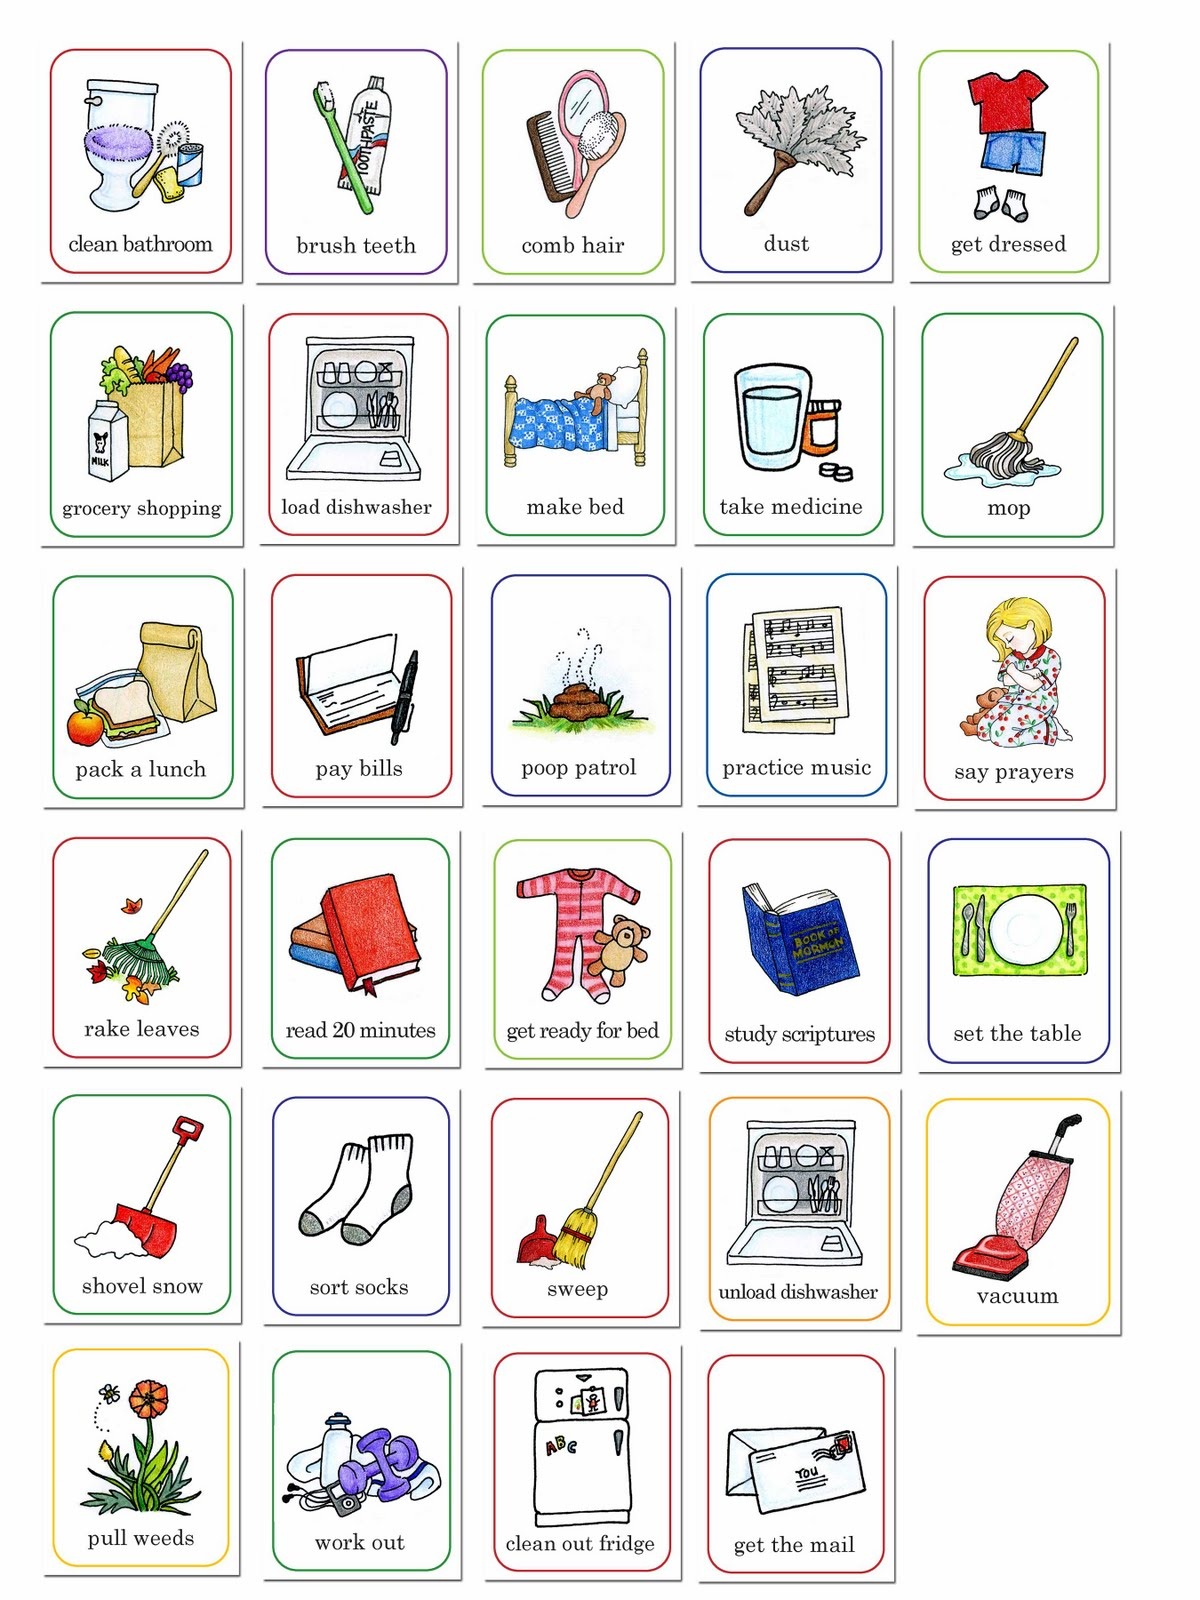 13 Job Chart Icons Images